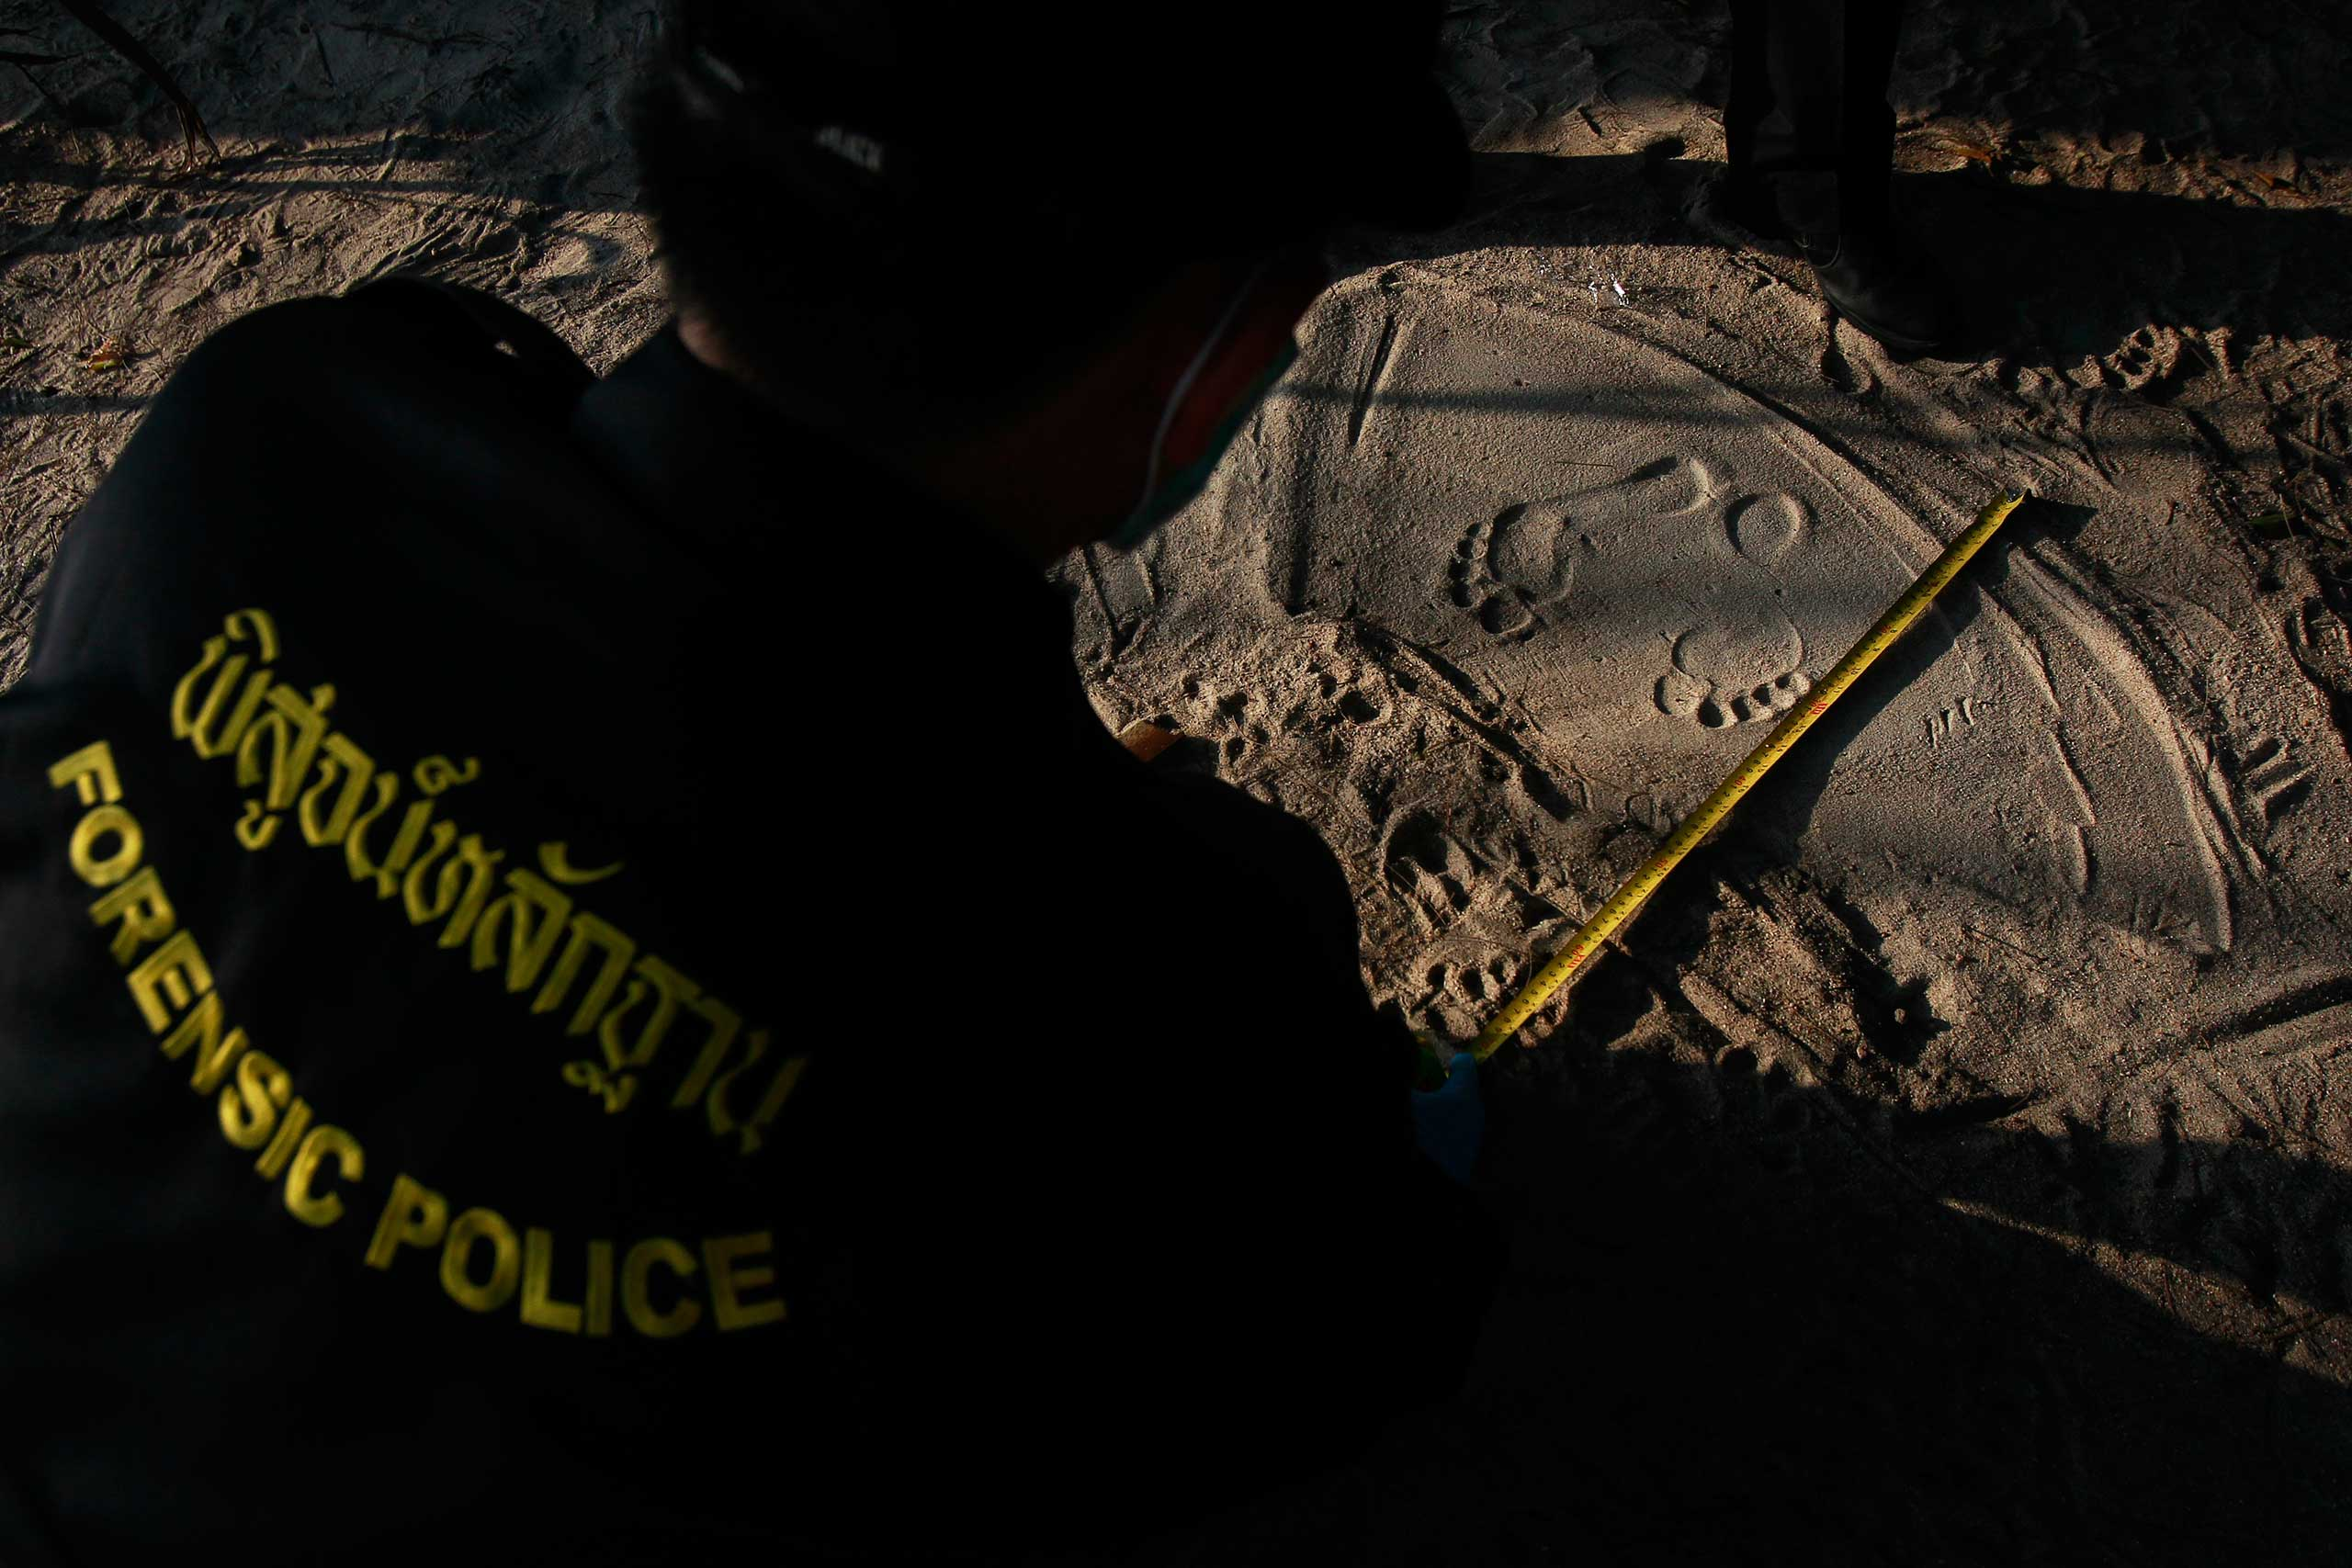 Police measure footprints of a man as data is collected from people who work near the spot where bodies of two killed British tourists were found, on the island of Koh Tao, Thailand, on Sept. 19, 2014